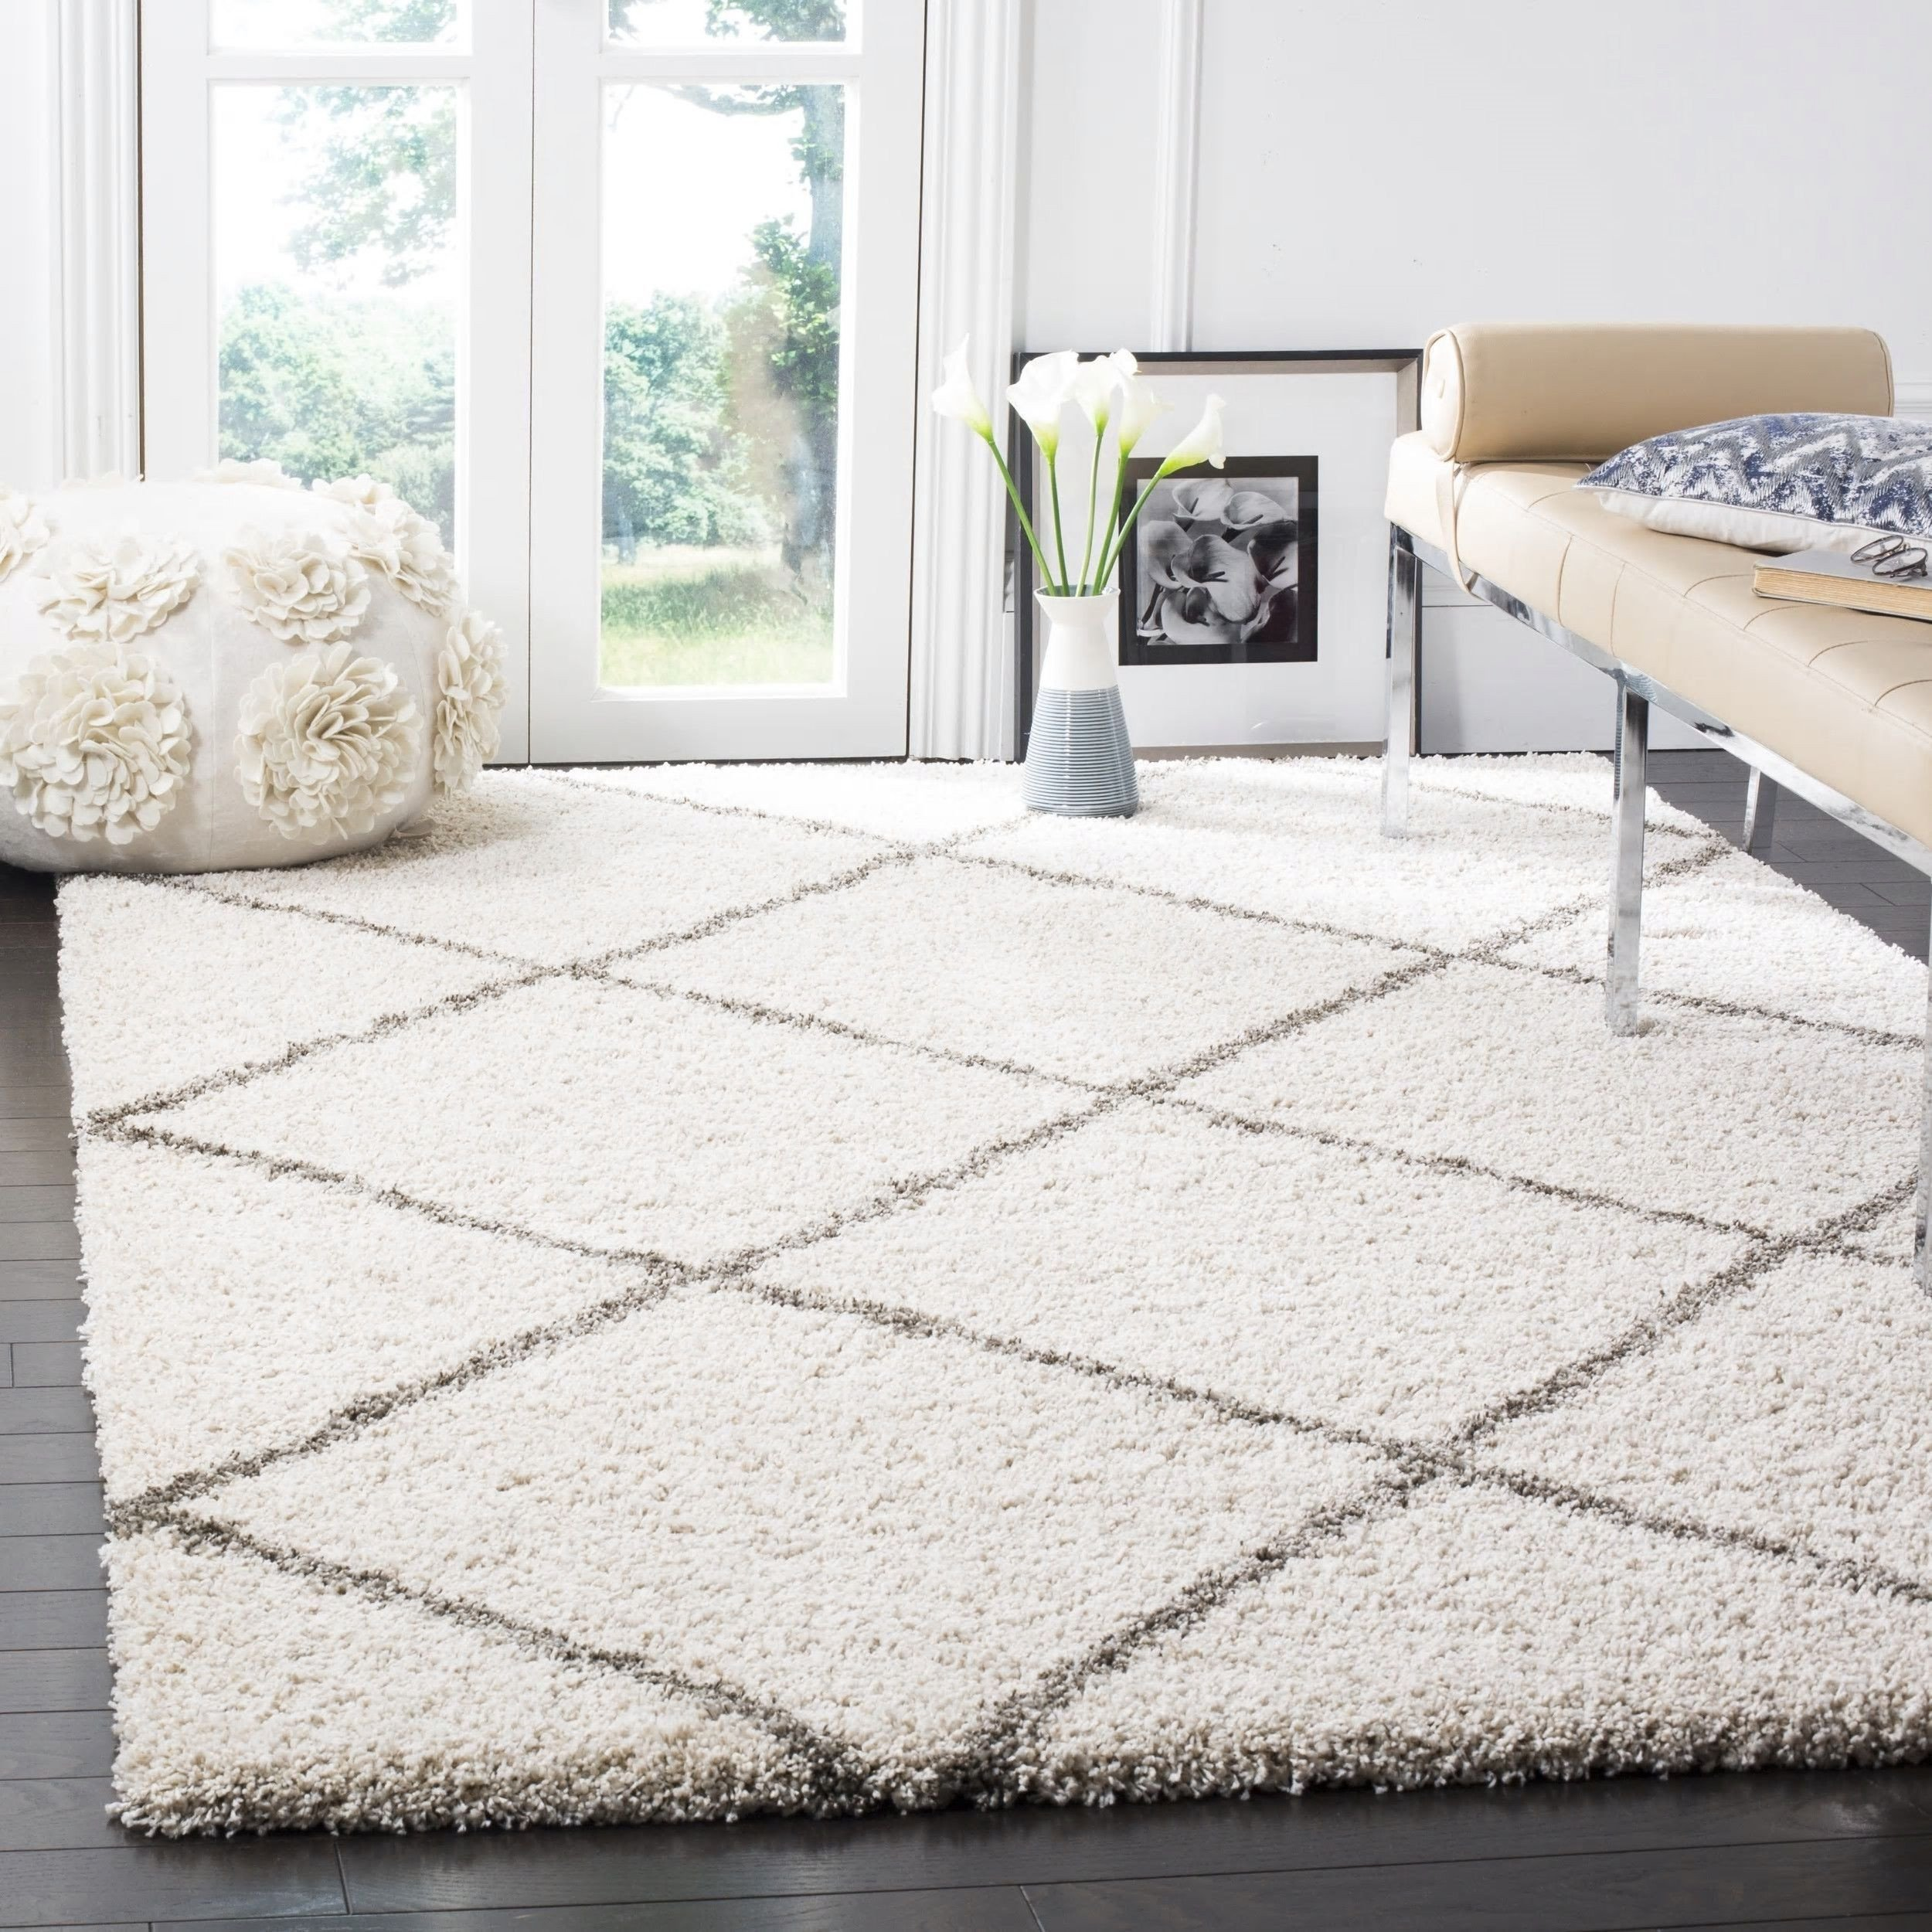 Accent Rugs for Bedroom Elegant Bohemian Trellis Ivory Shag area Rug